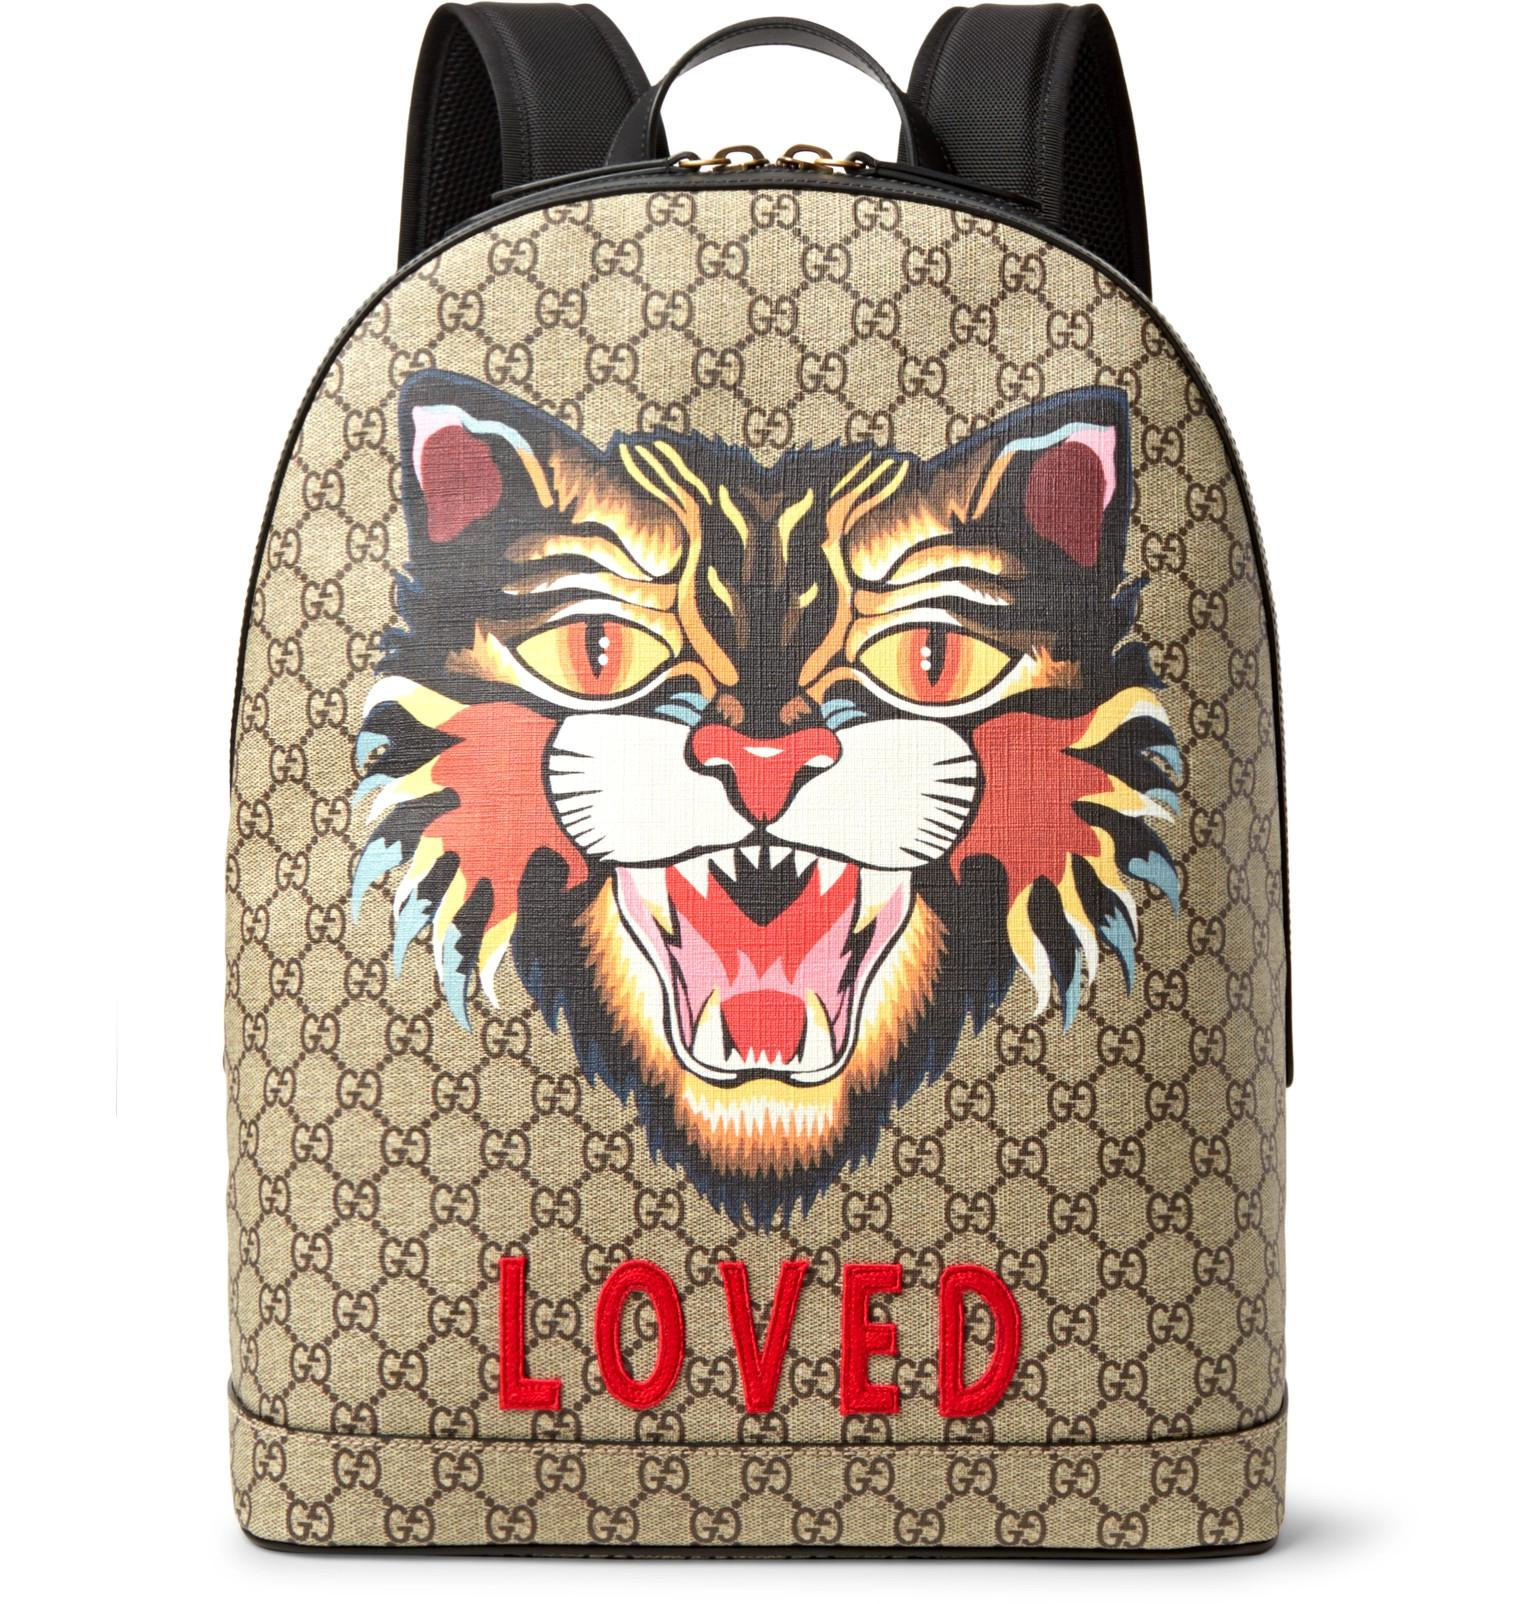 5543207a2bd2 Gucci Angry Cat Leather-trimmed Appliquéd Monogrammed Coated-canvas ...